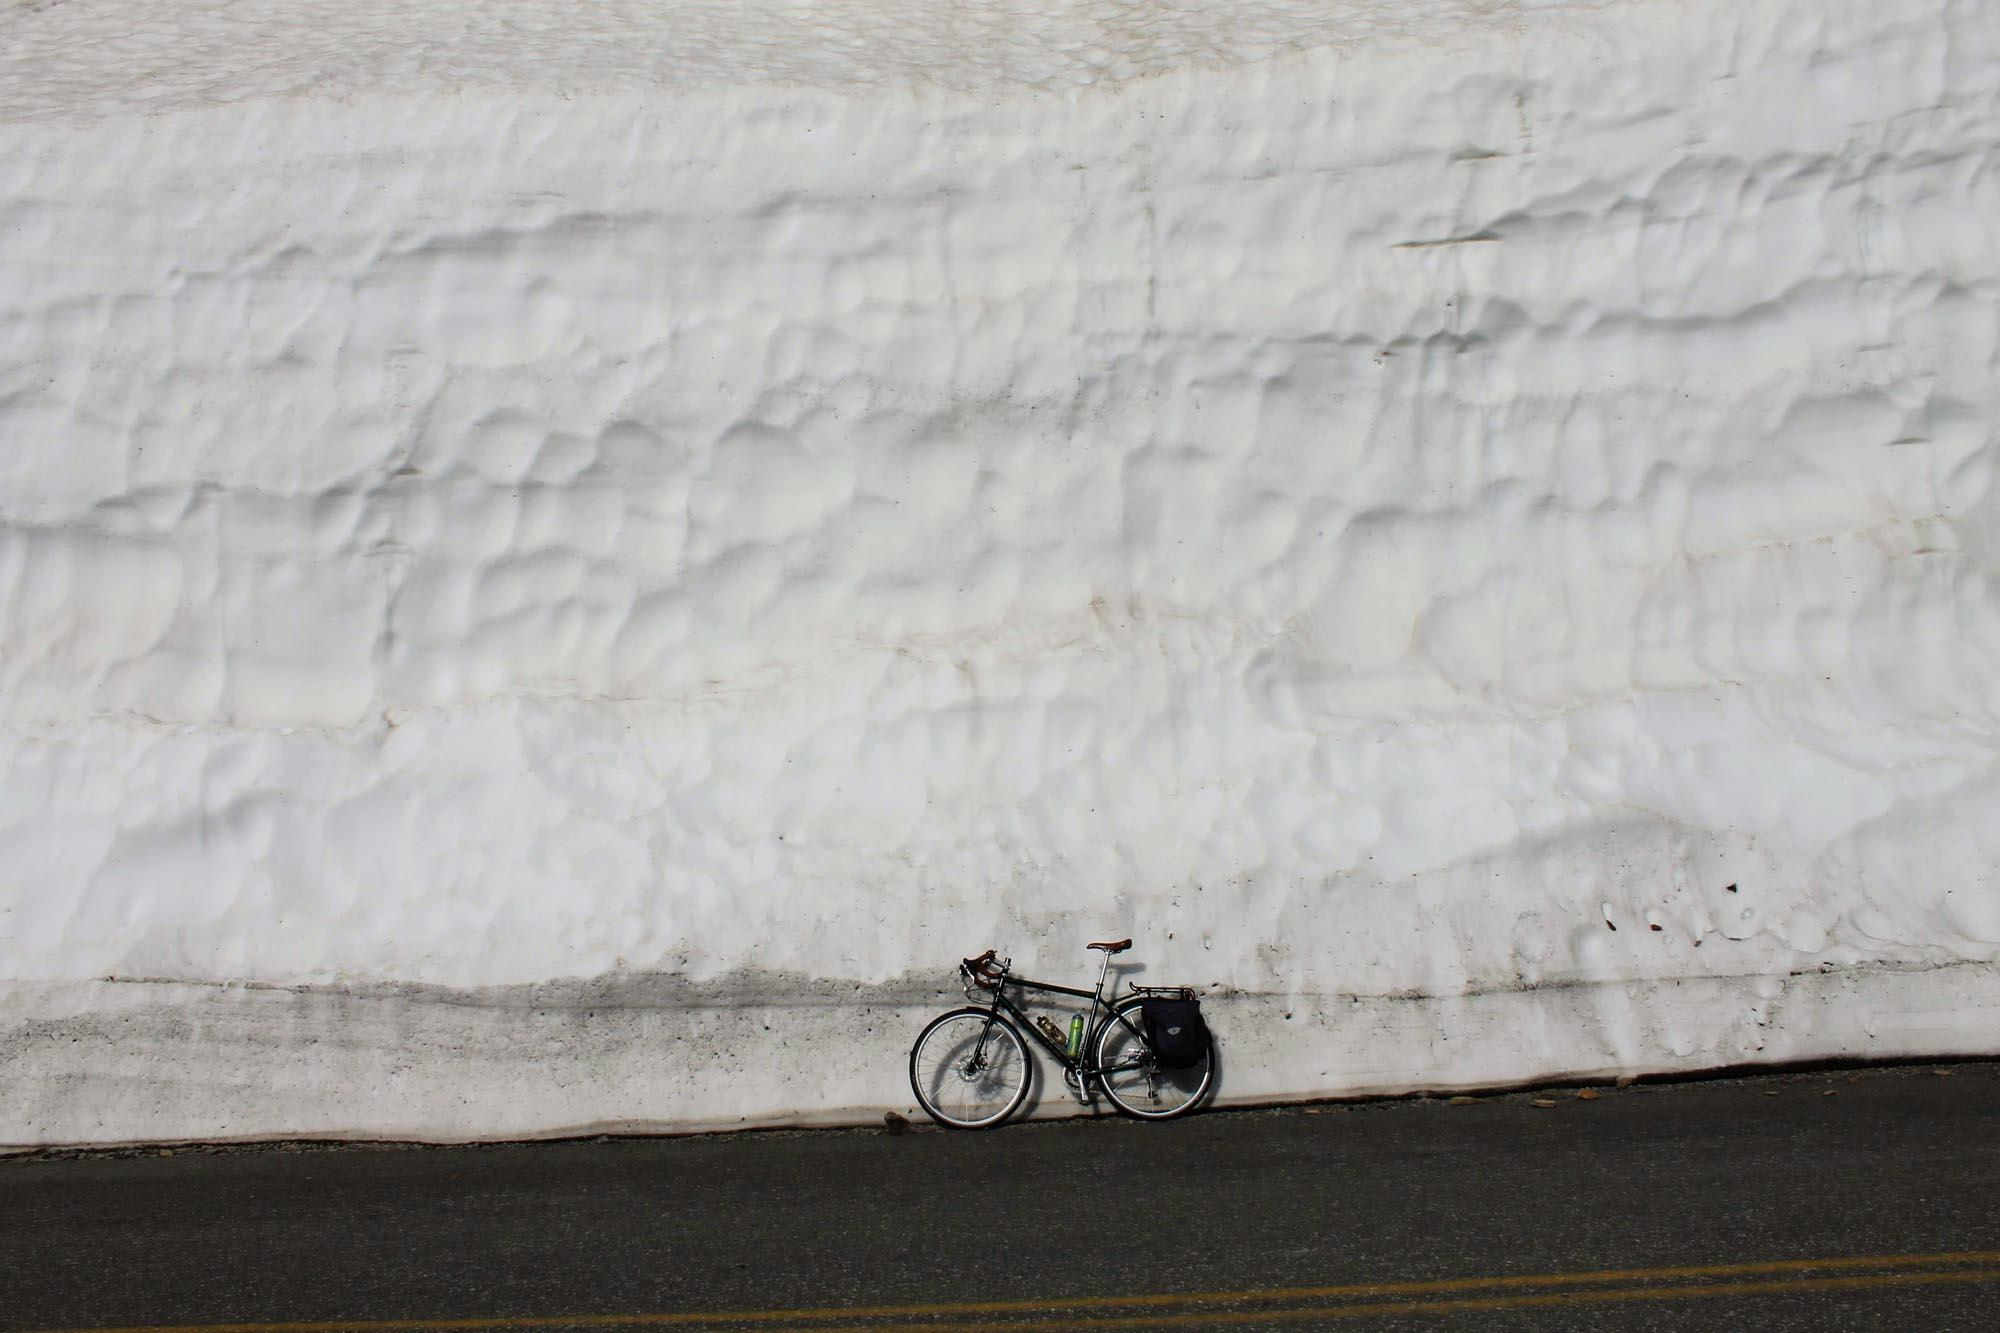 Going-to-the-Sun Road receives incredible amounts of snow during the winter